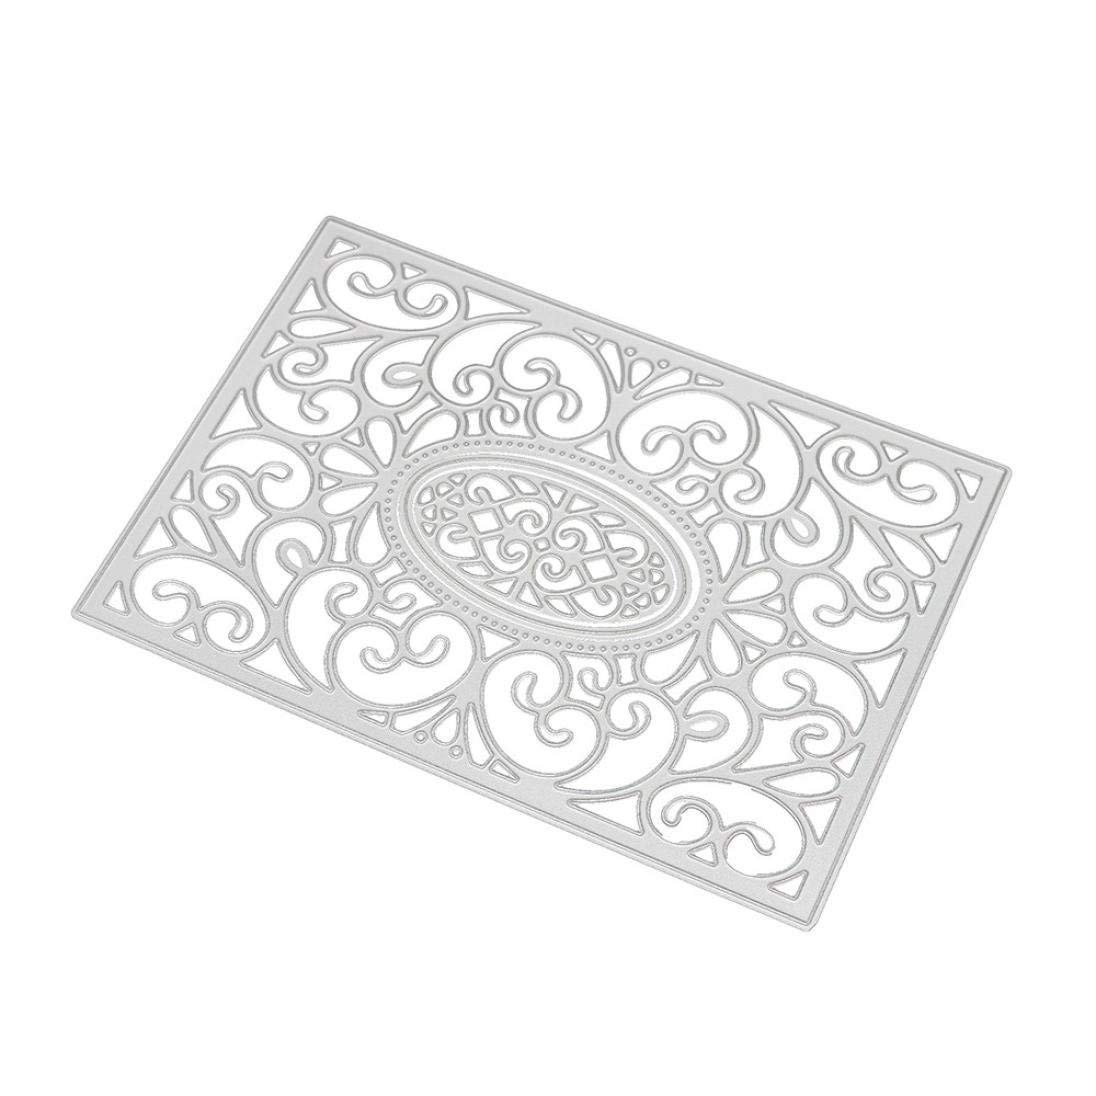 Fabal Frame Metal Cutting Dies DIY Album Scrapbook Card Bookmark Decor Tools Cutting Dies for Scrapbooking (C) by Fabal (Image #2)